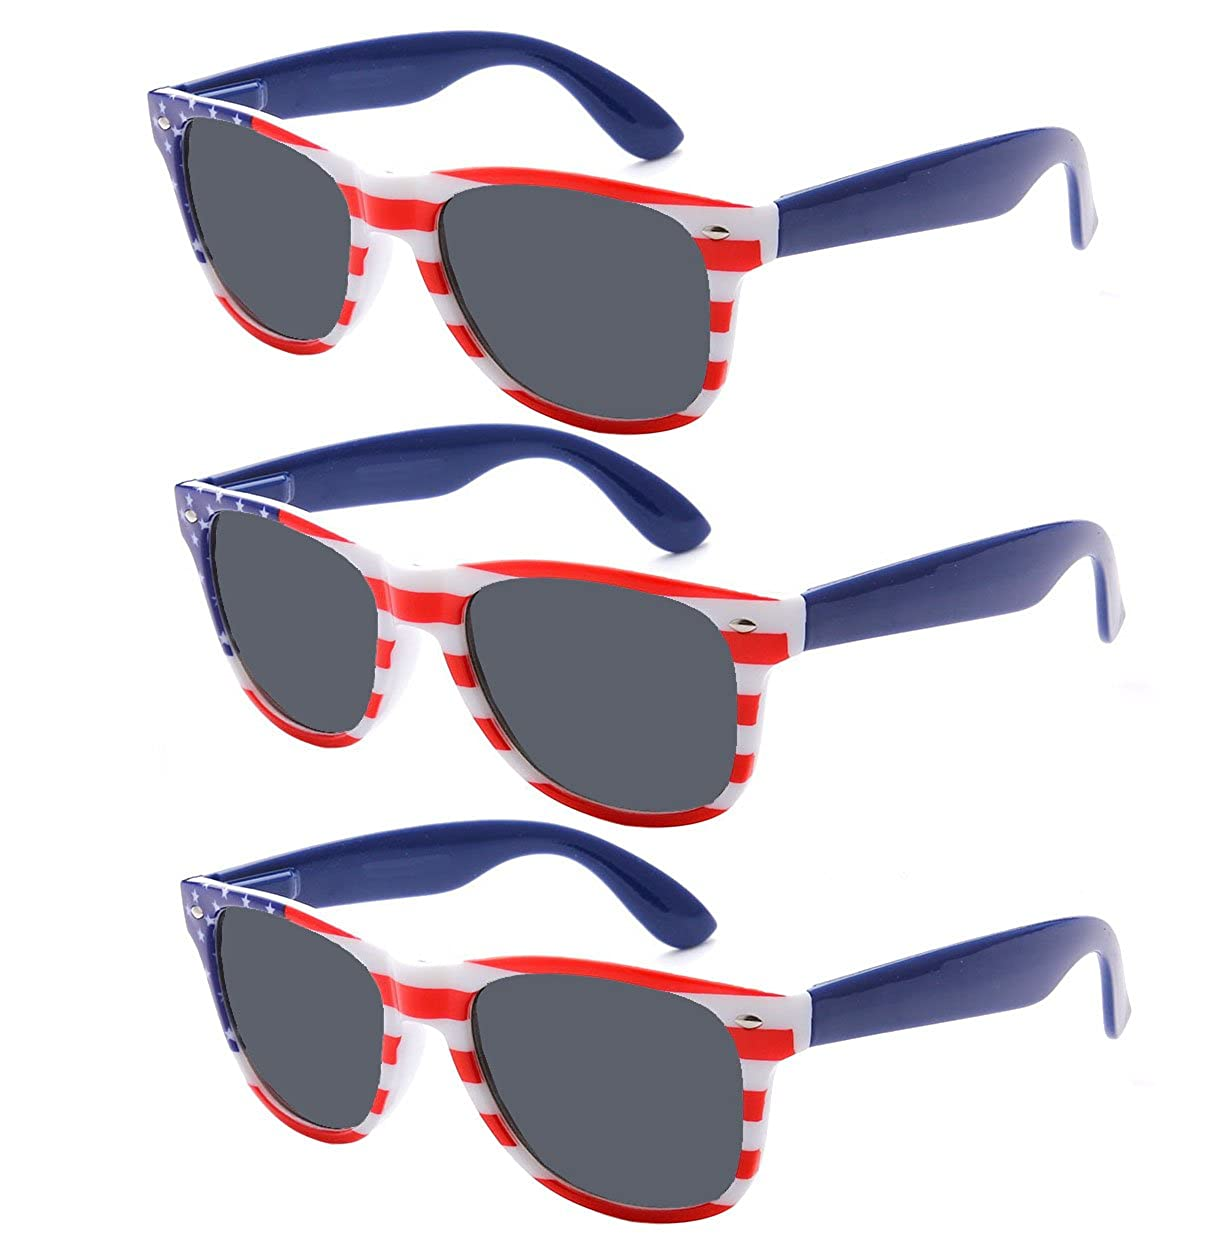 170c4d295aa American Flag Sunglasses Great for the 4th of July! Awesome US Flag  Sunglasses in a Vintage Inspired Design